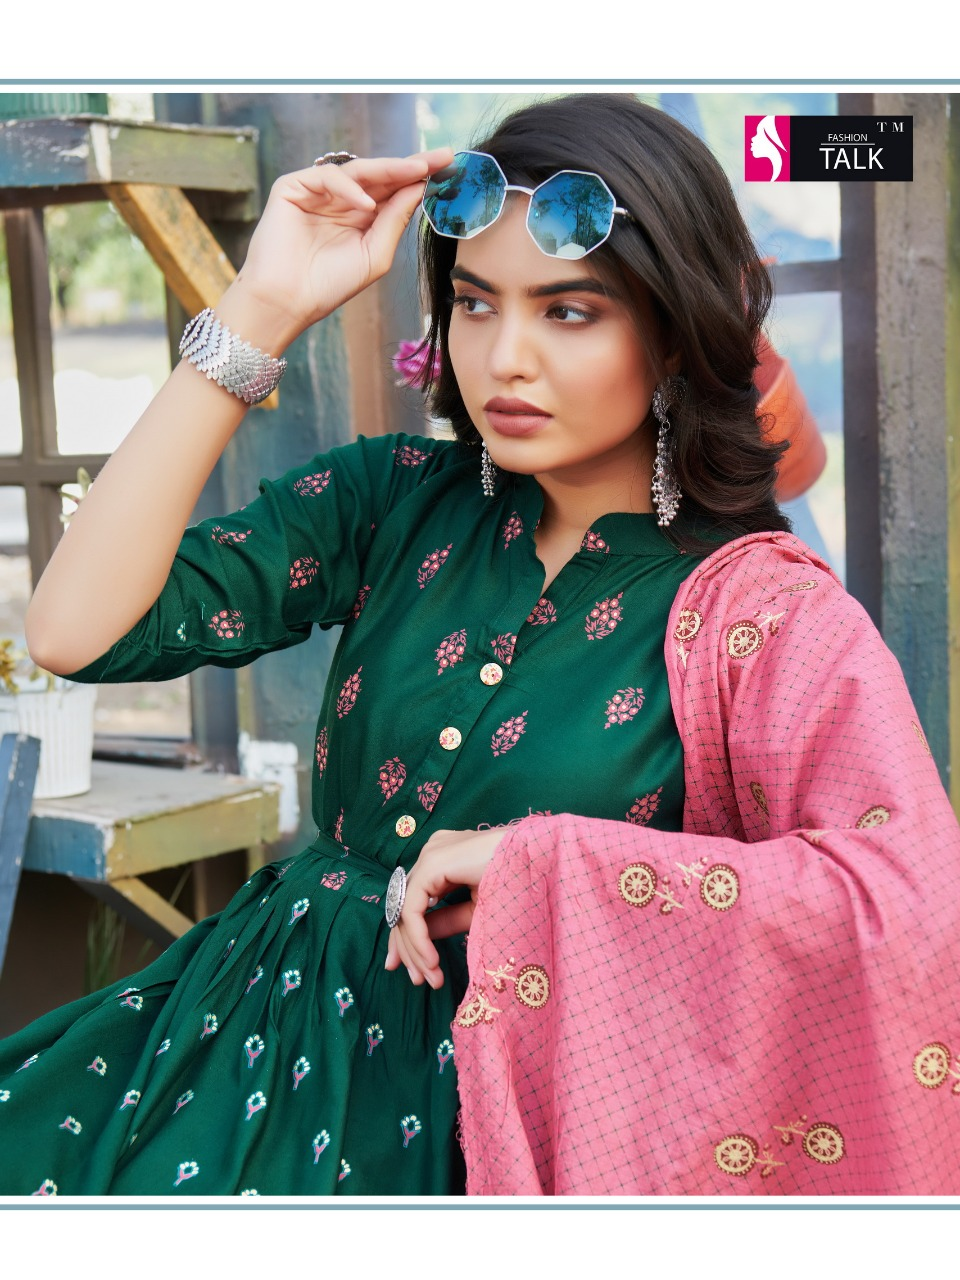 Fashion Talk Cocktail Vol 1 Kurti with Dupatta Wholesale Catalog 8 Pcs 4 - Fashion Talk Cocktail Vol 1 Kurti with Dupatta Wholesale Catalog 8 Pcs